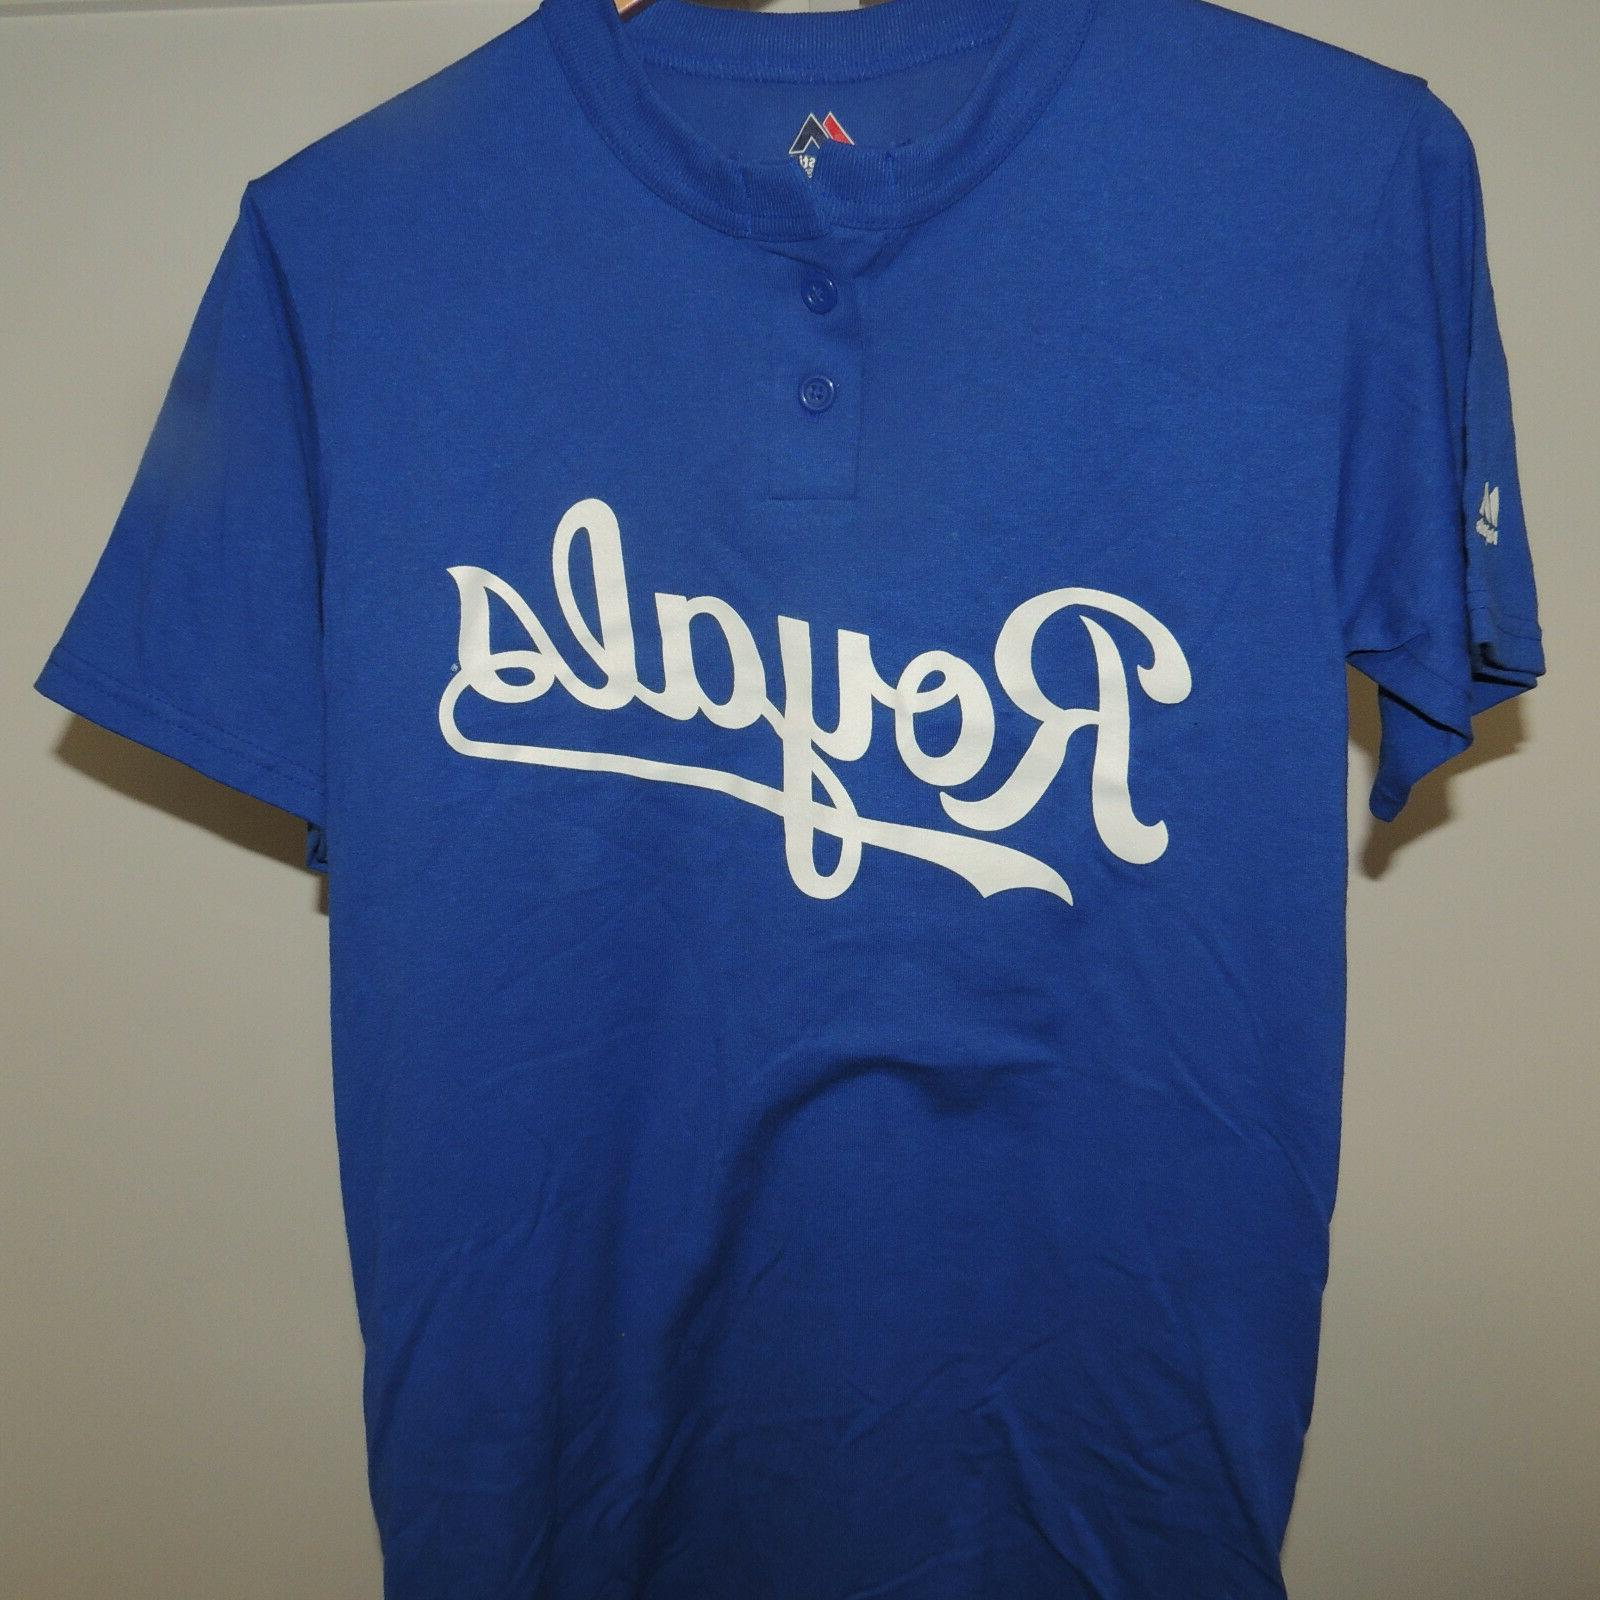 mlb kansas city royals baseball jersey shirt